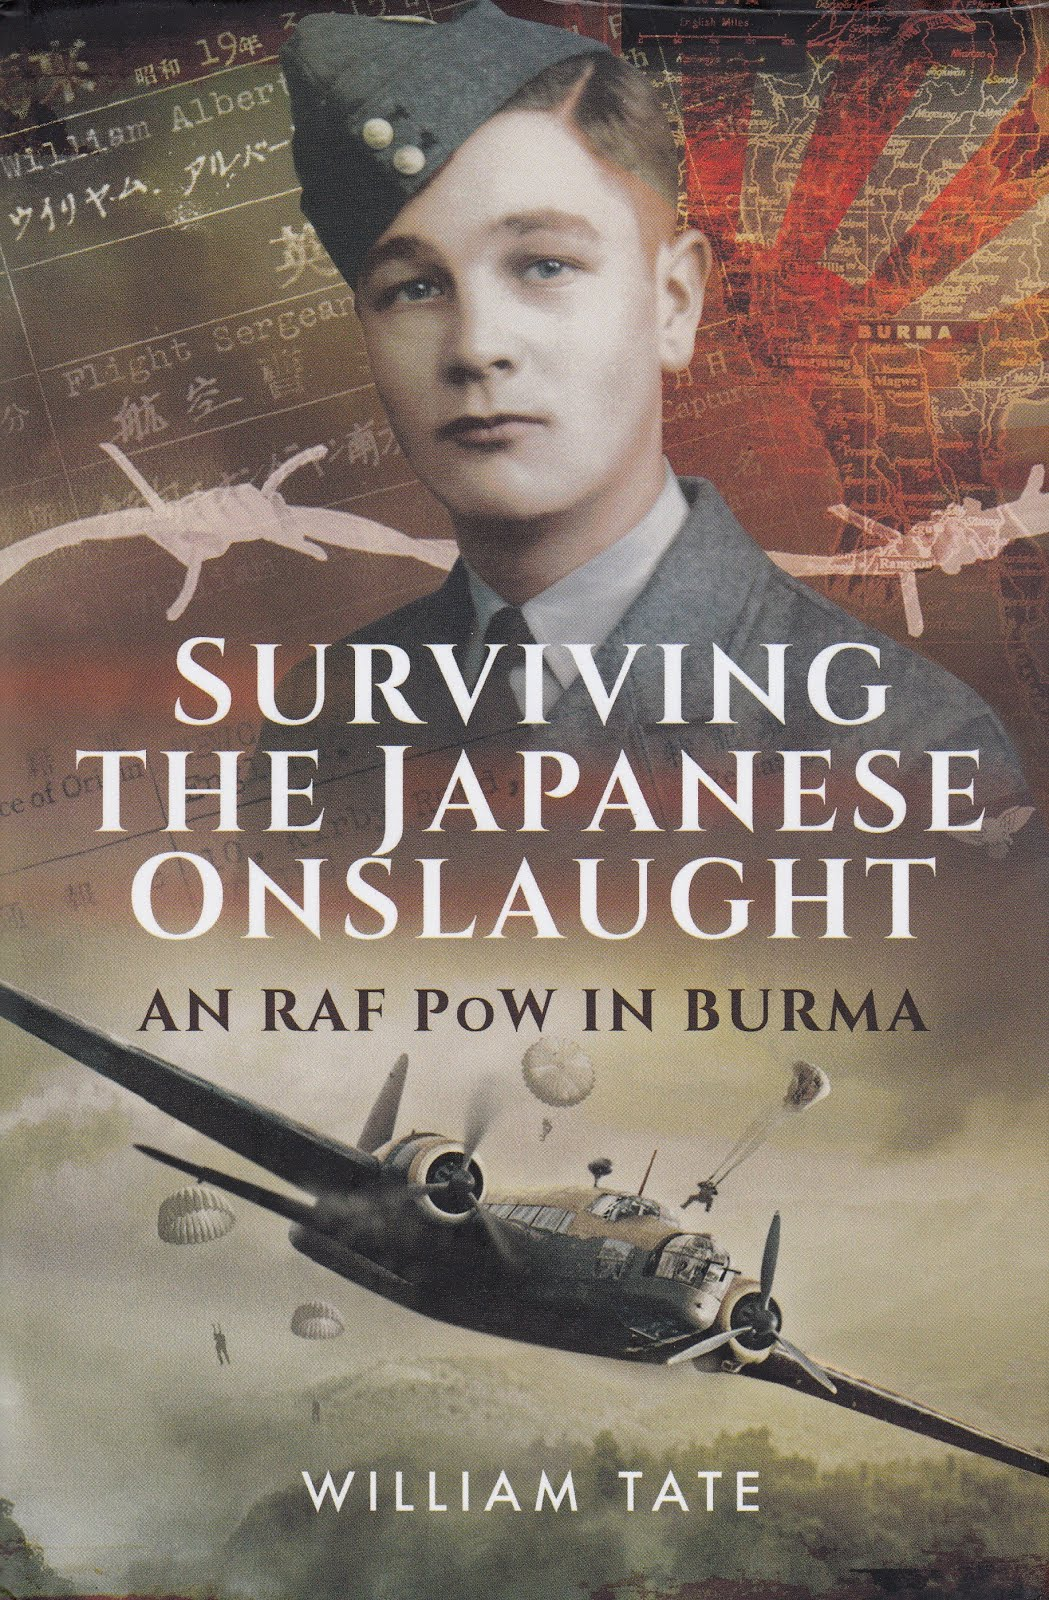 Surviving The Japanese Onslaught